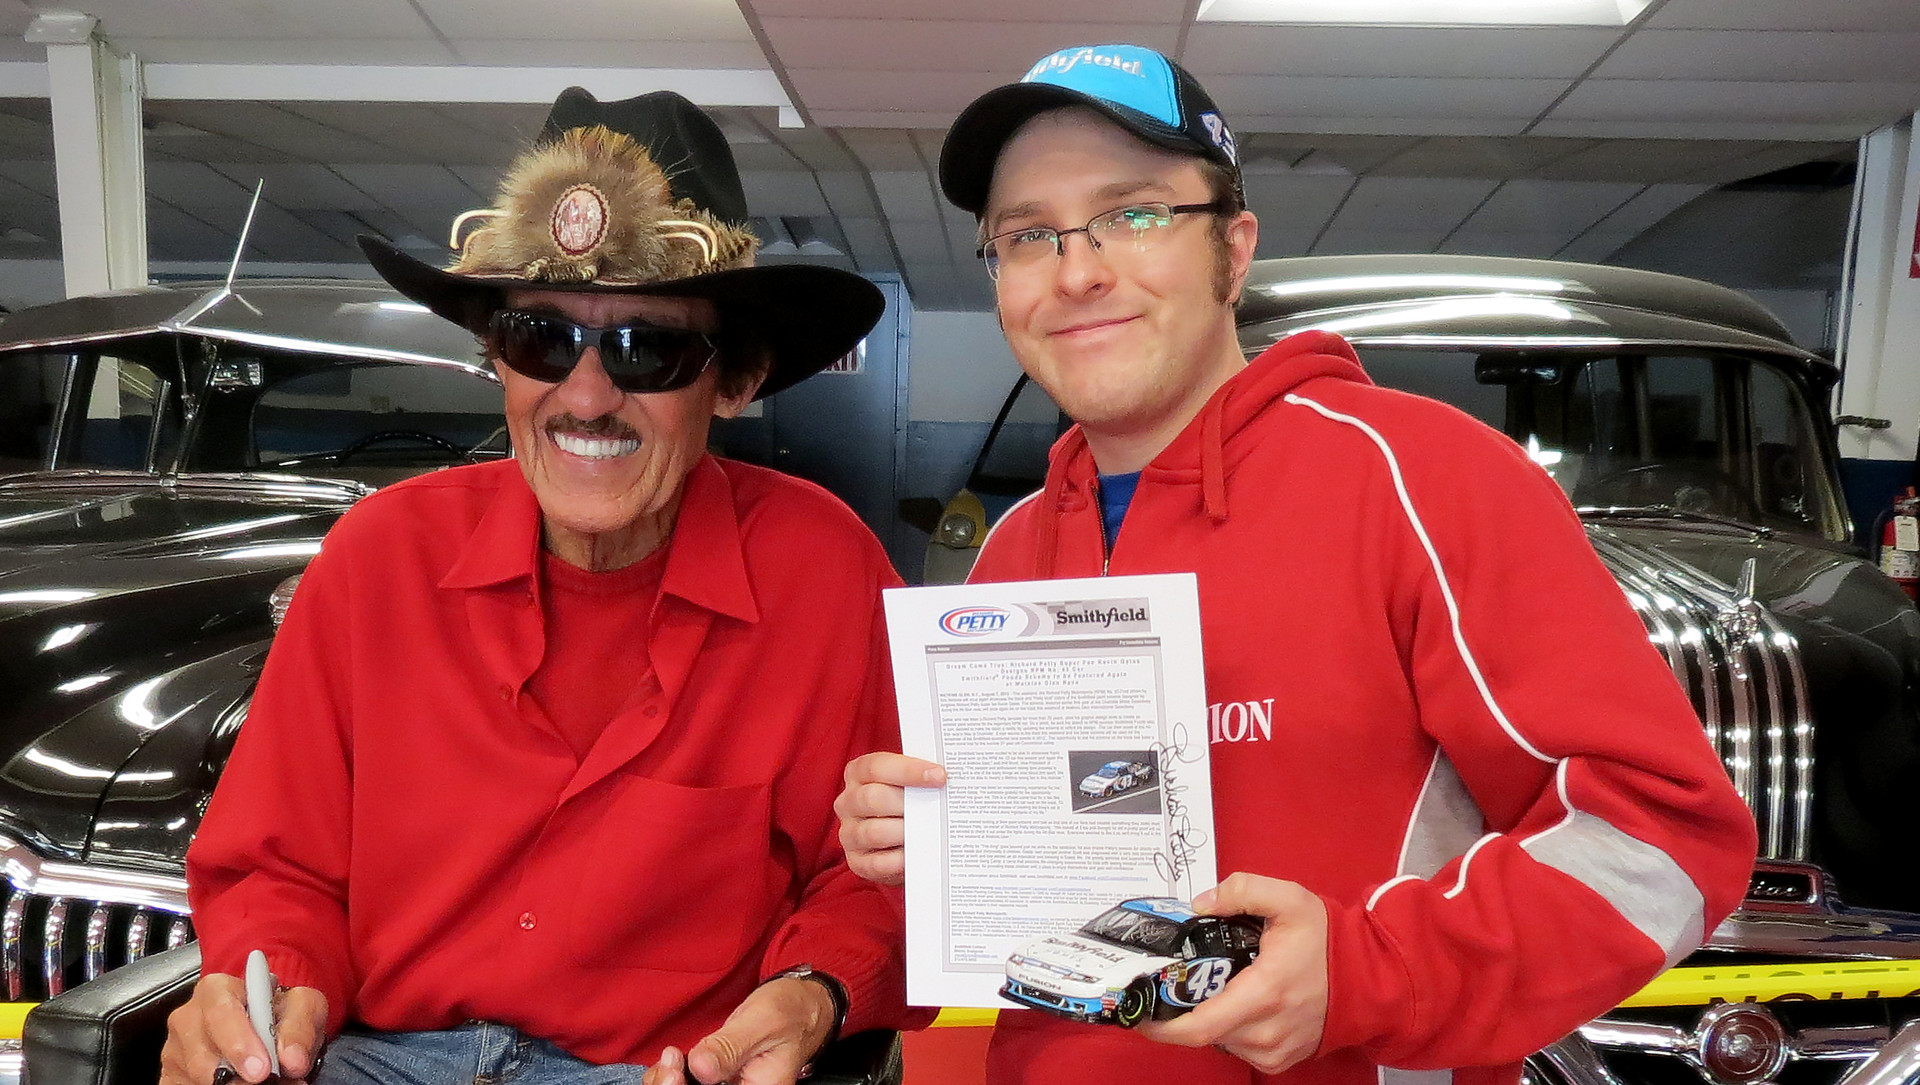 """The King"" Richard Petty signs the Smithfield press release announcing the new car design for 2012 and my custom diecast car at his Petty's Garage shop in Level Cross, NC"